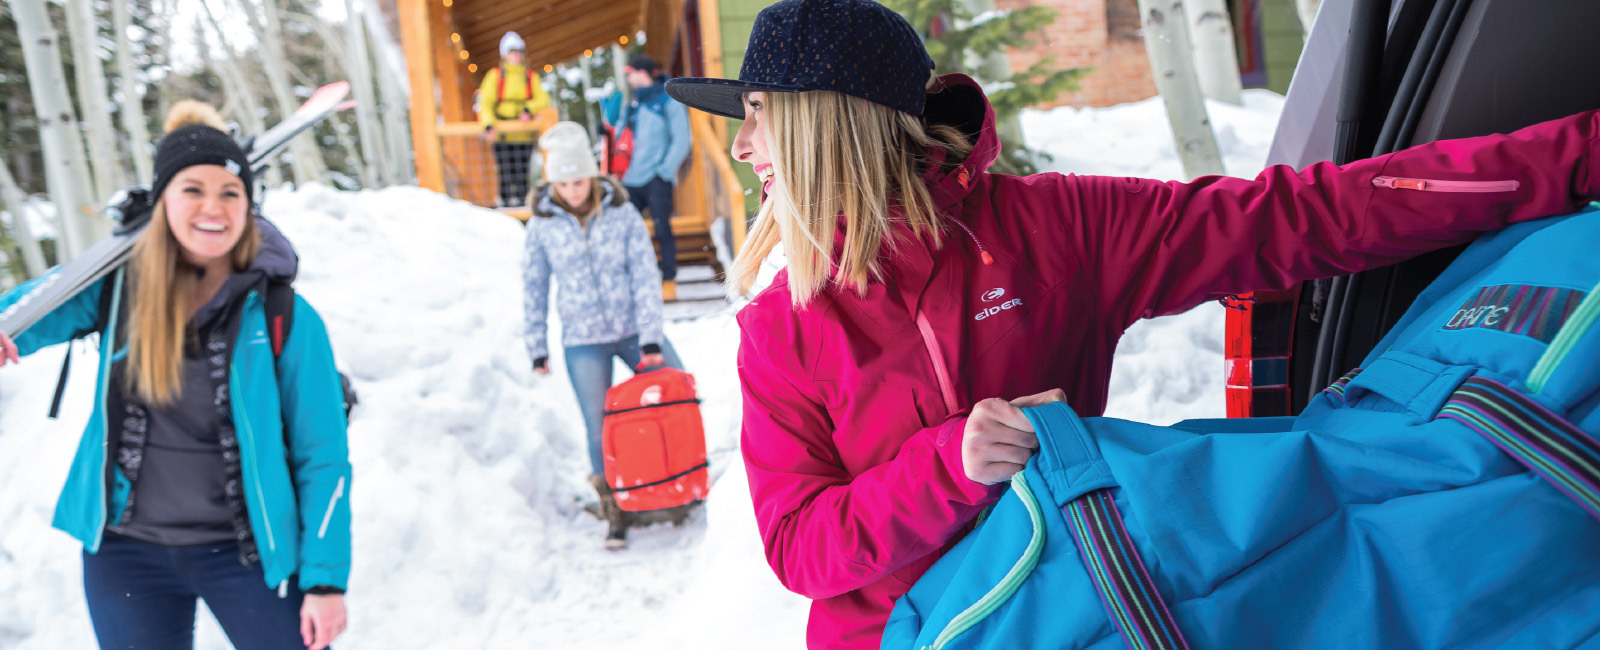 30 Ways to Save on Your Utah Ski Vacation